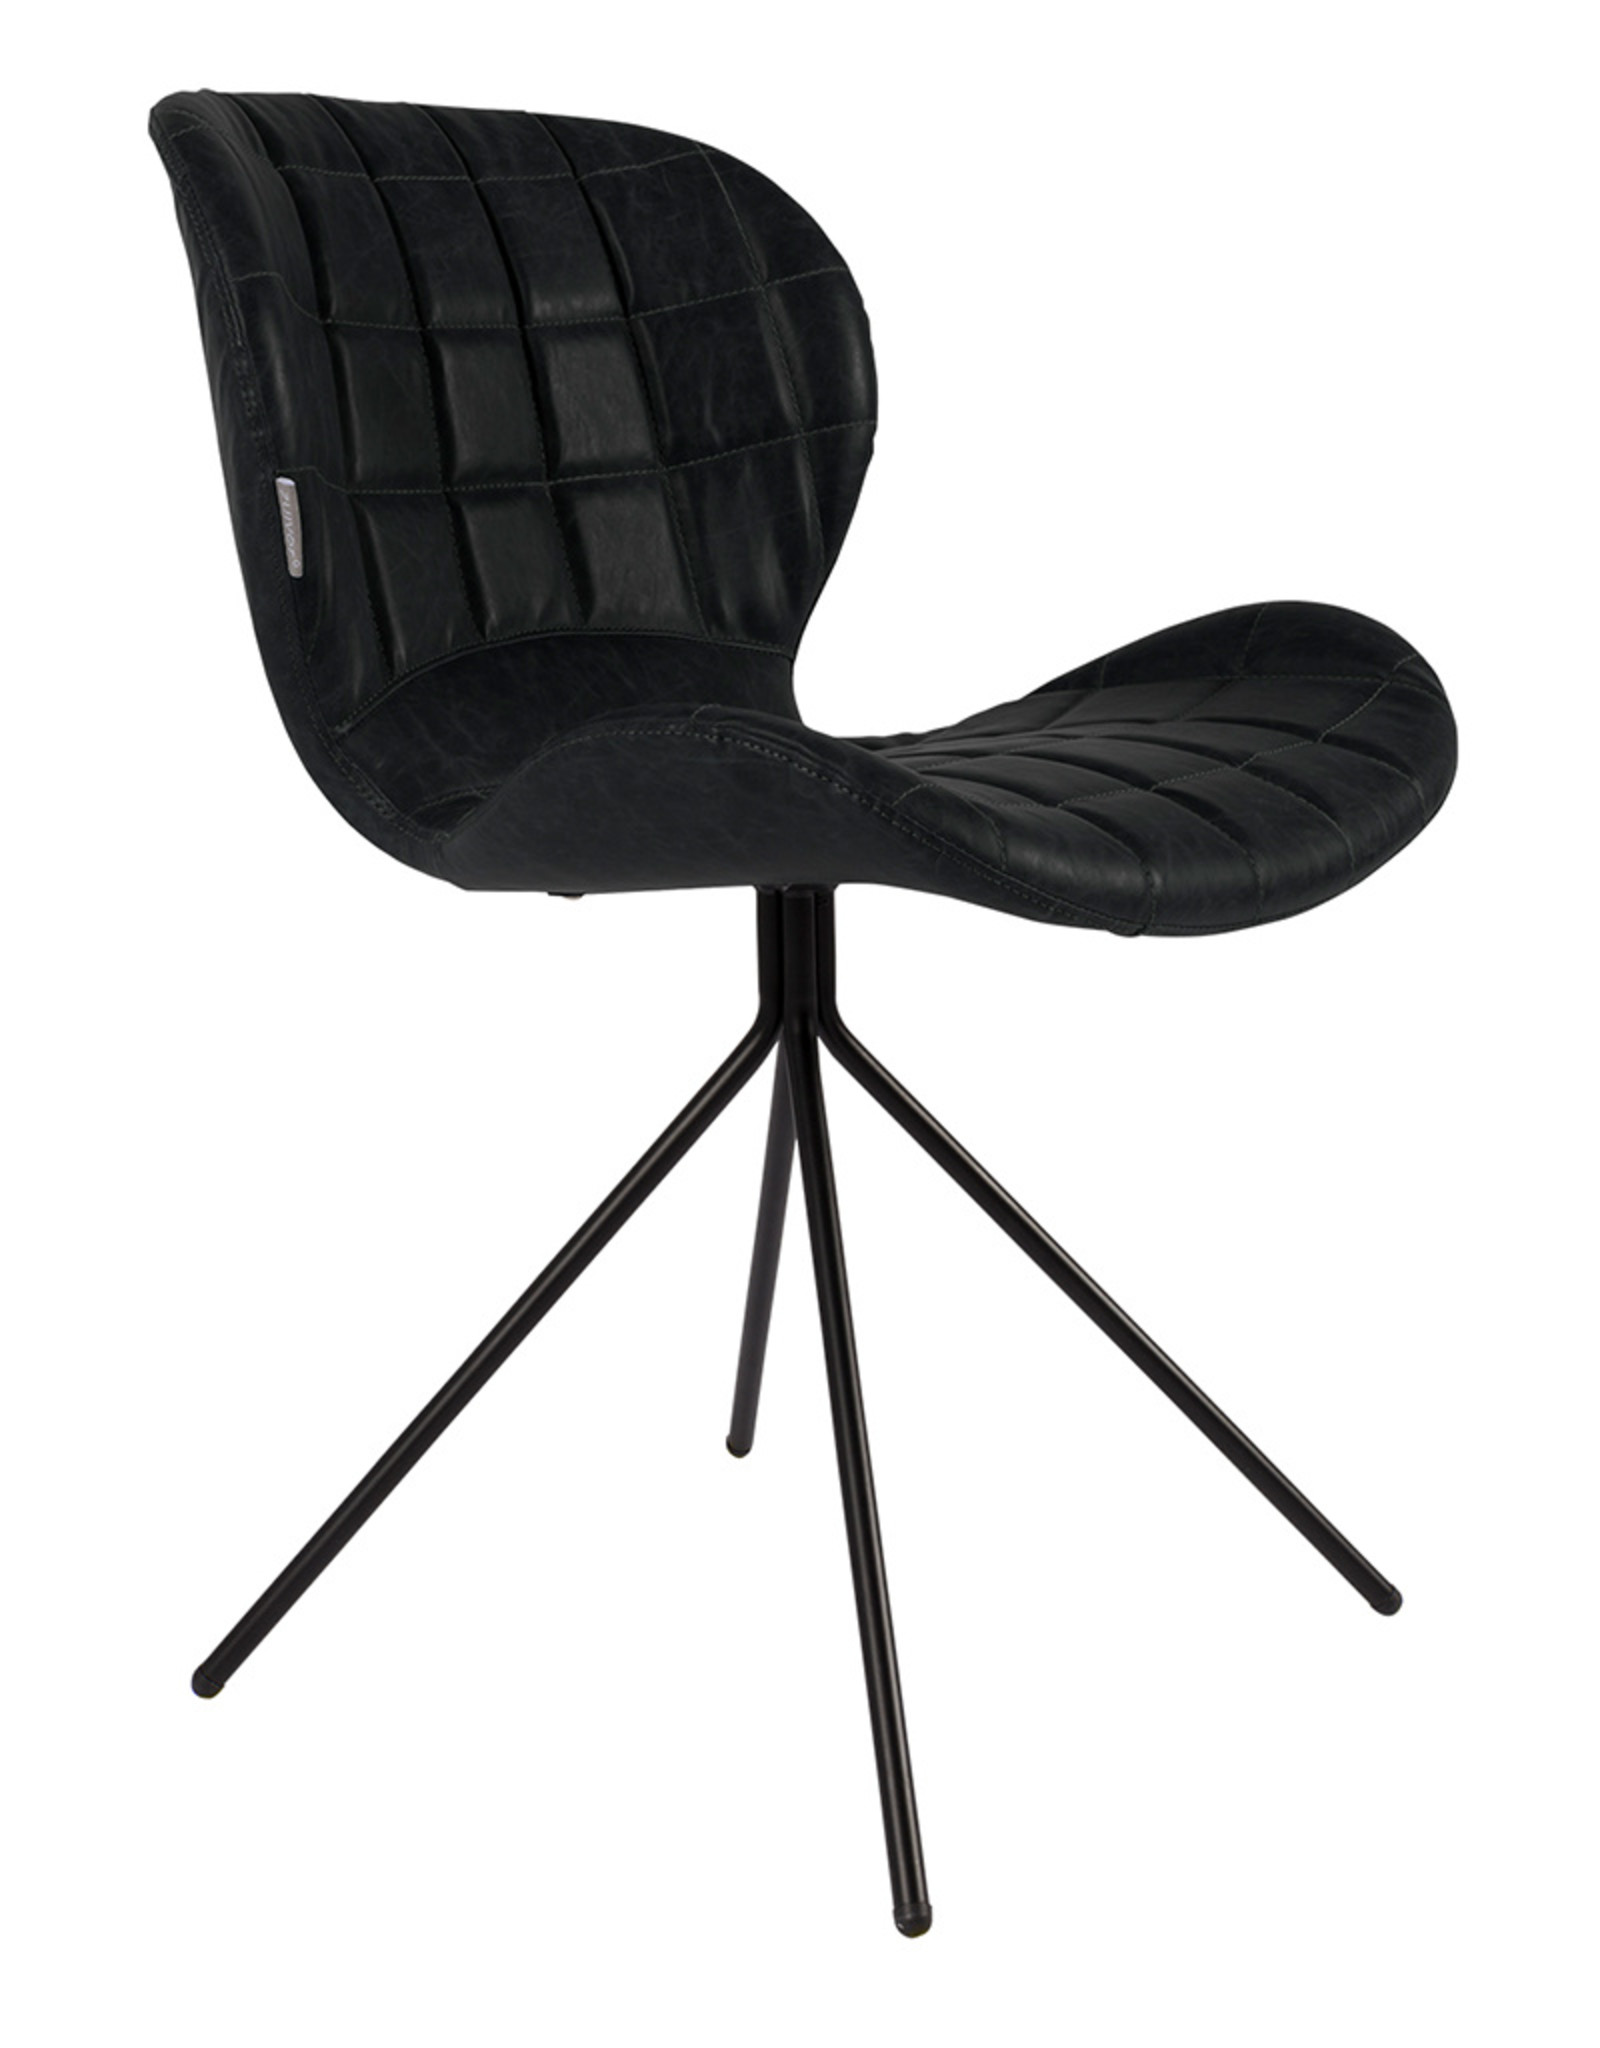 ZUIVER BV OMG LL Chair (set of 2)